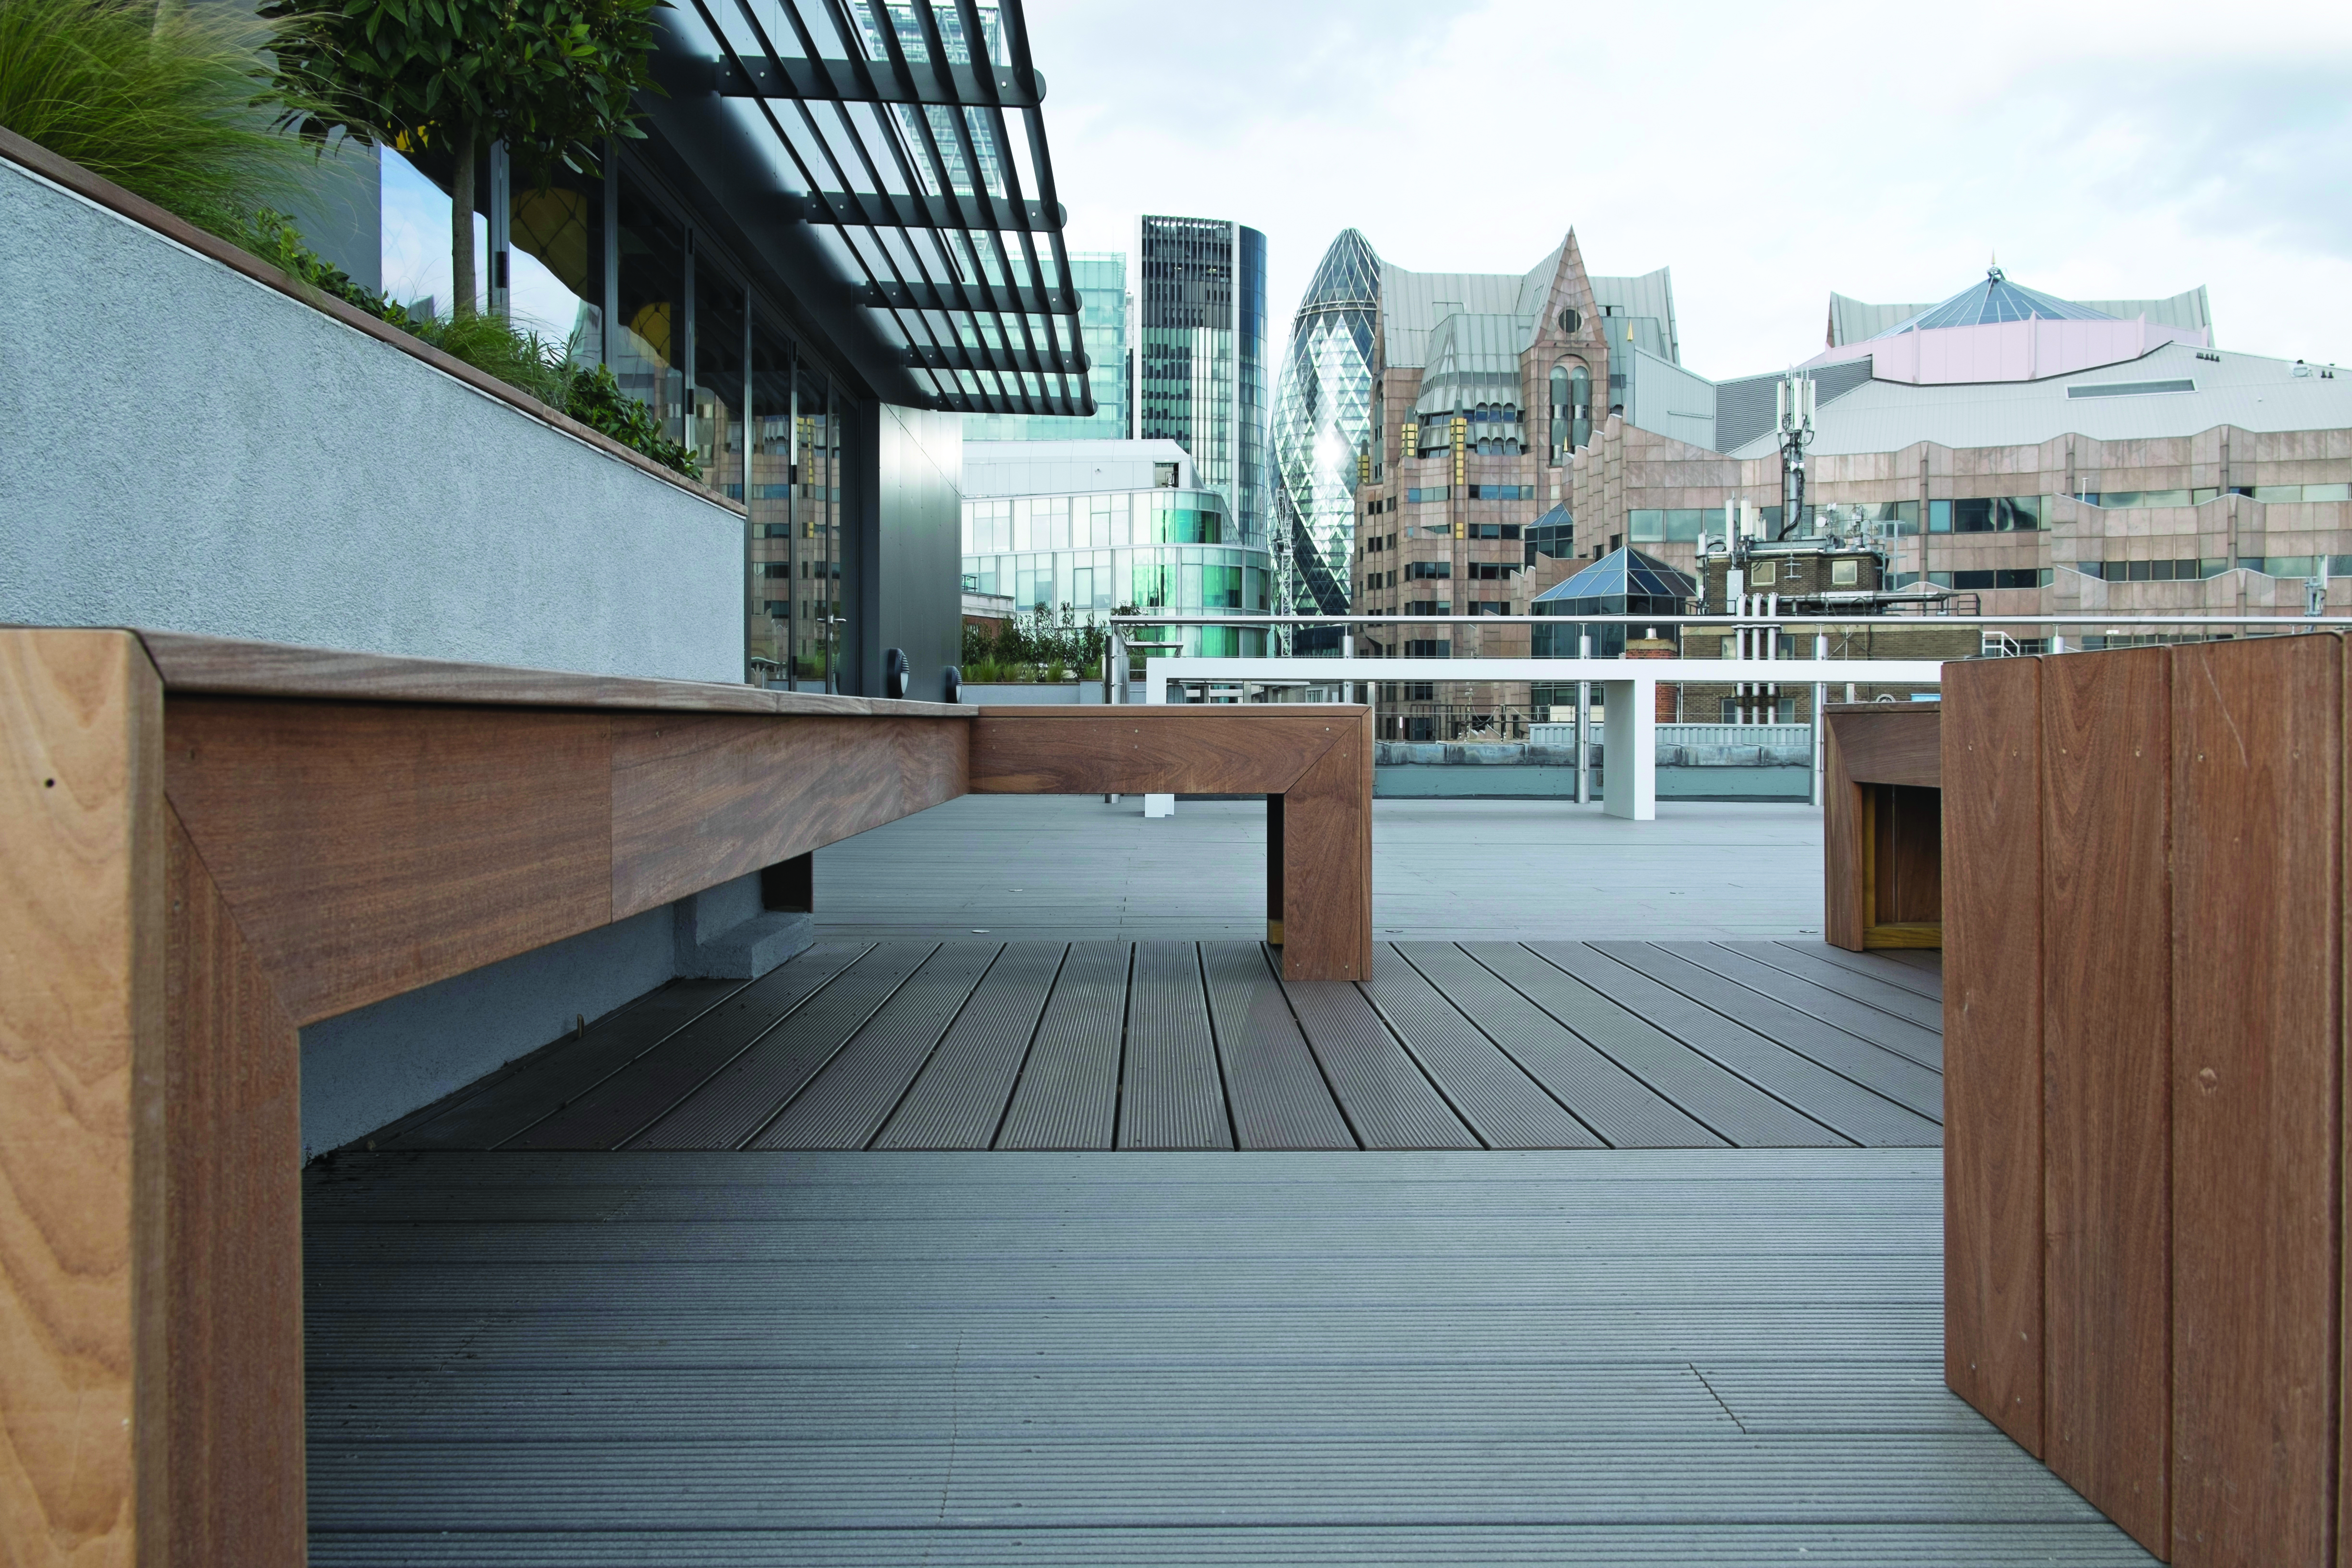 Balcony Decking - Composite decking options - Sunrock Balconies